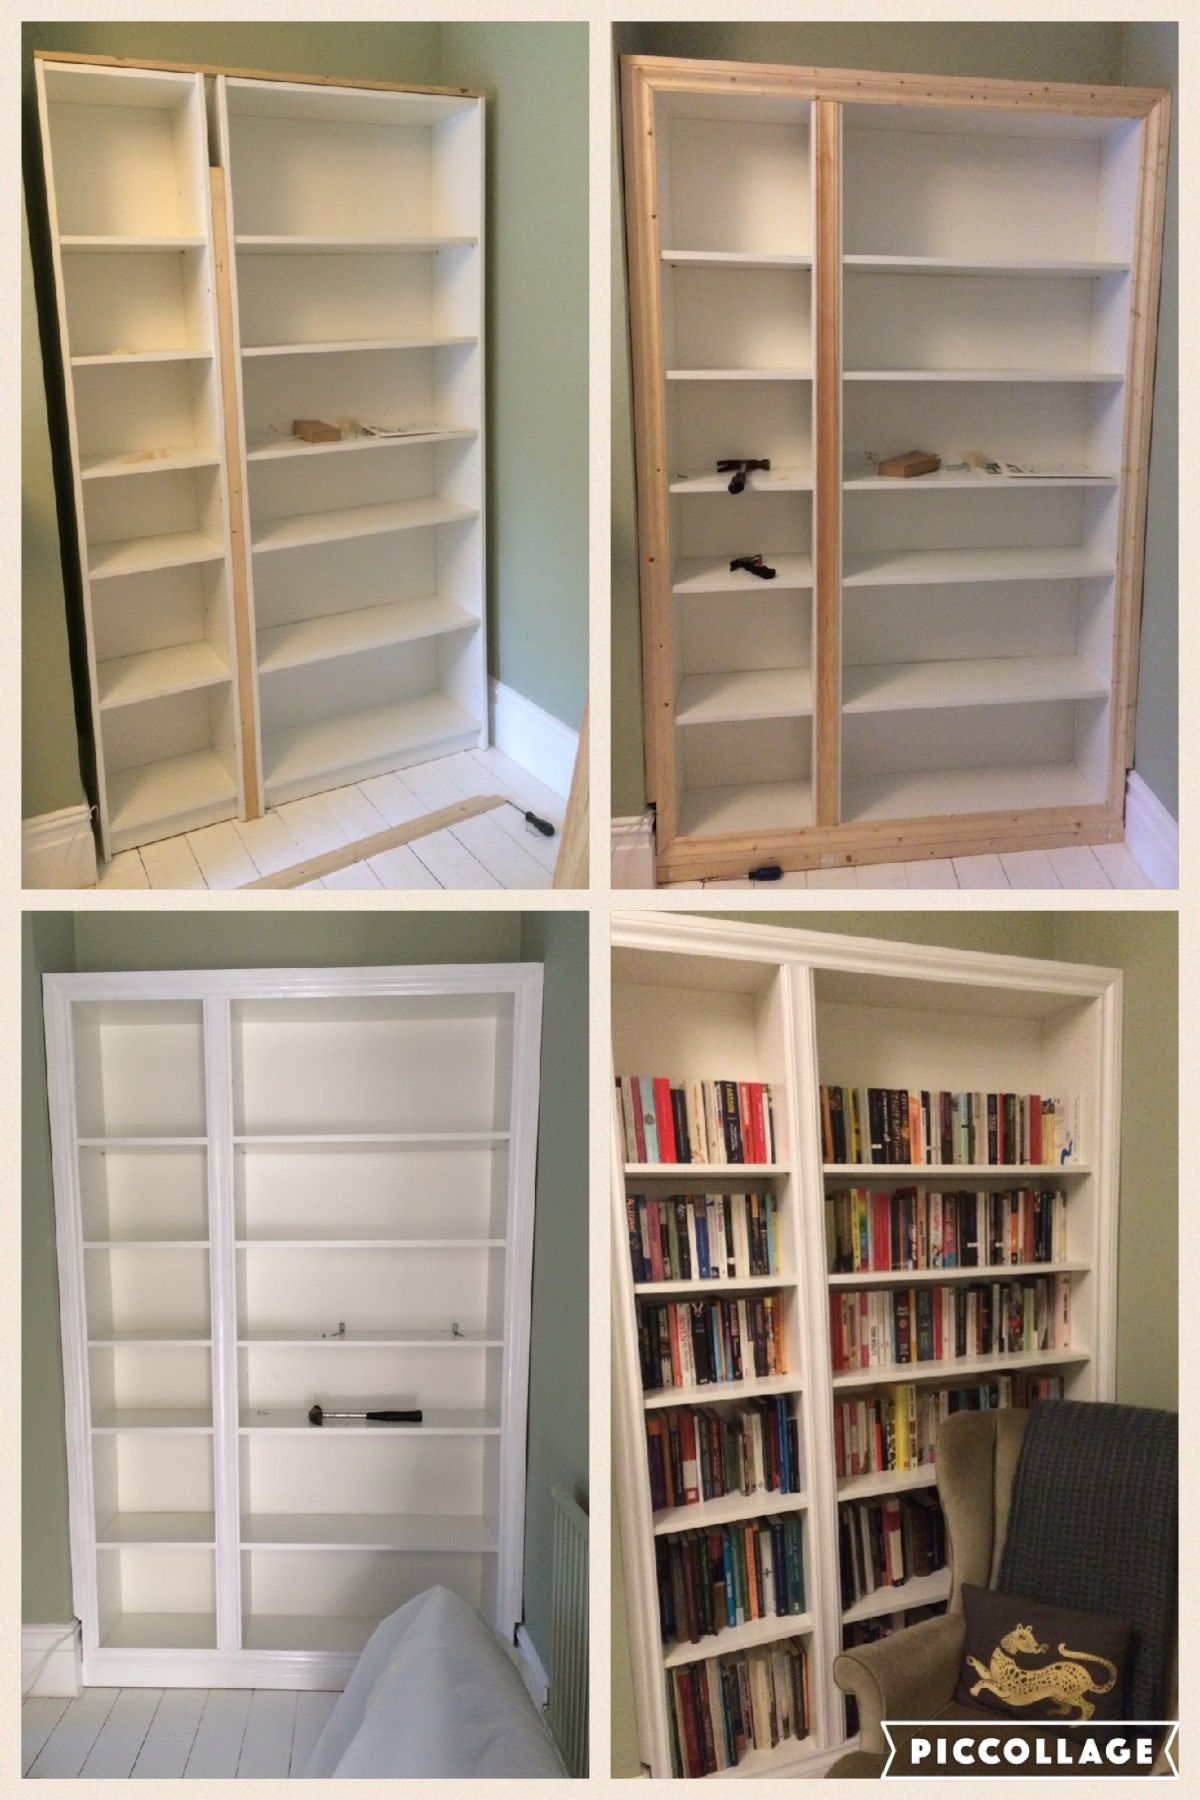 Elegant IKEA Hack! Billy Bookcase Modified To Look Like Built In Alcove Shelving